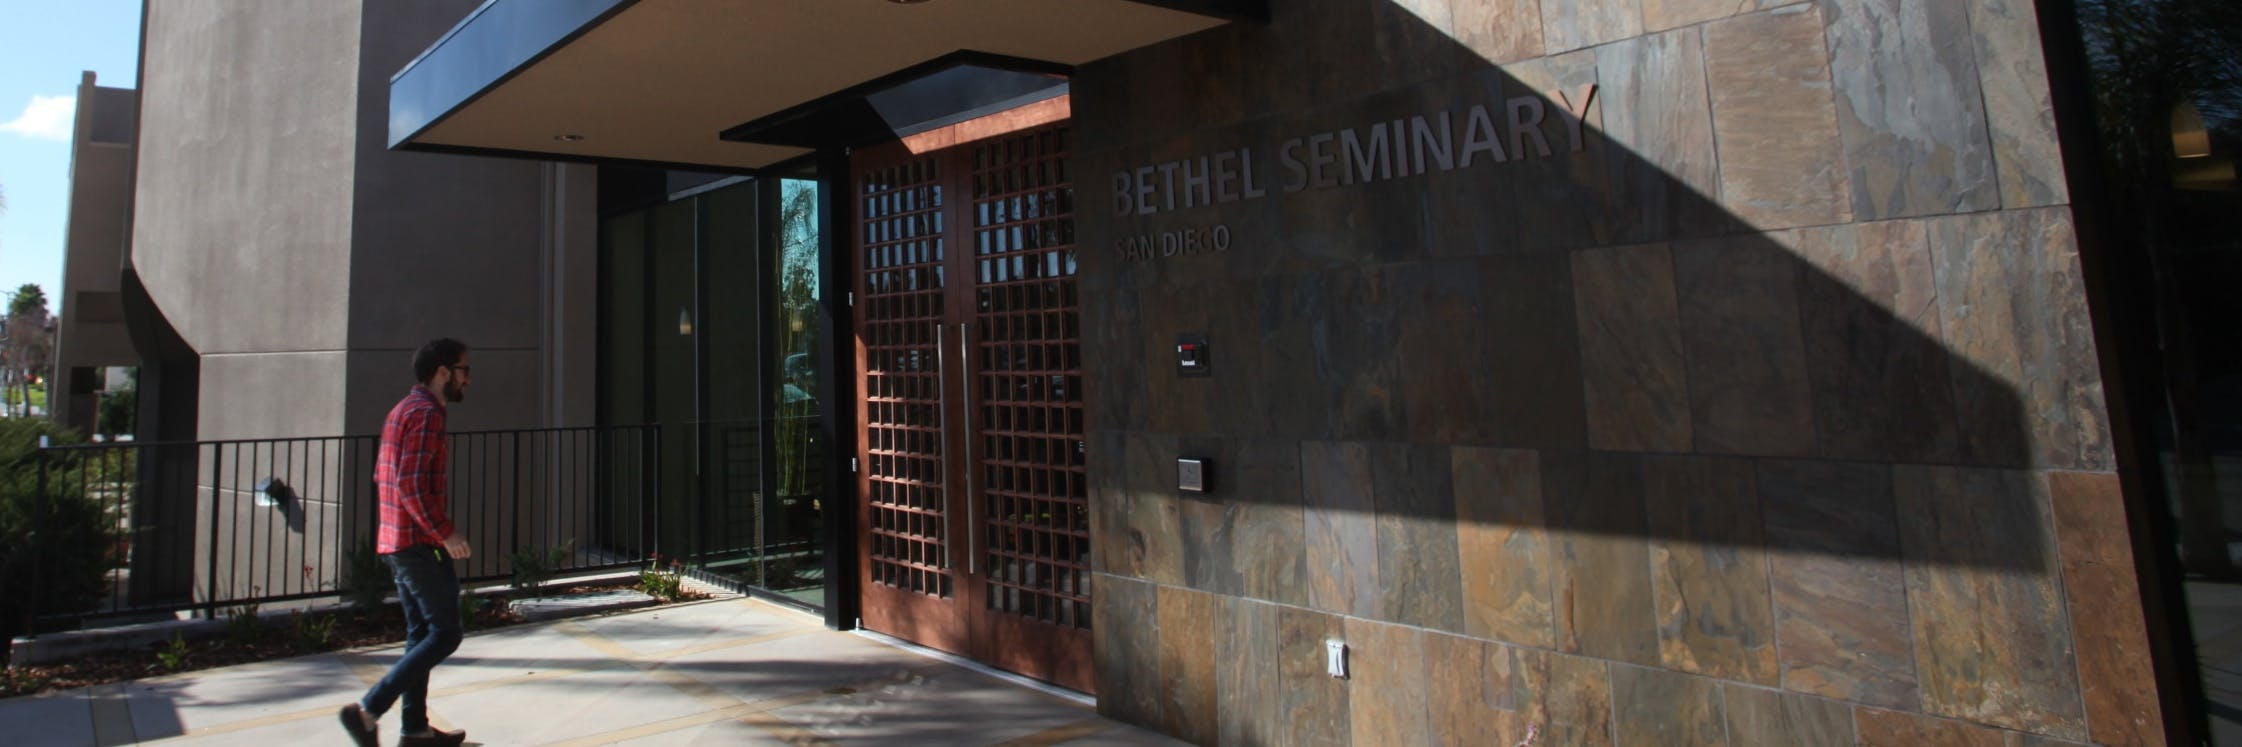 Seminary building in San Diego